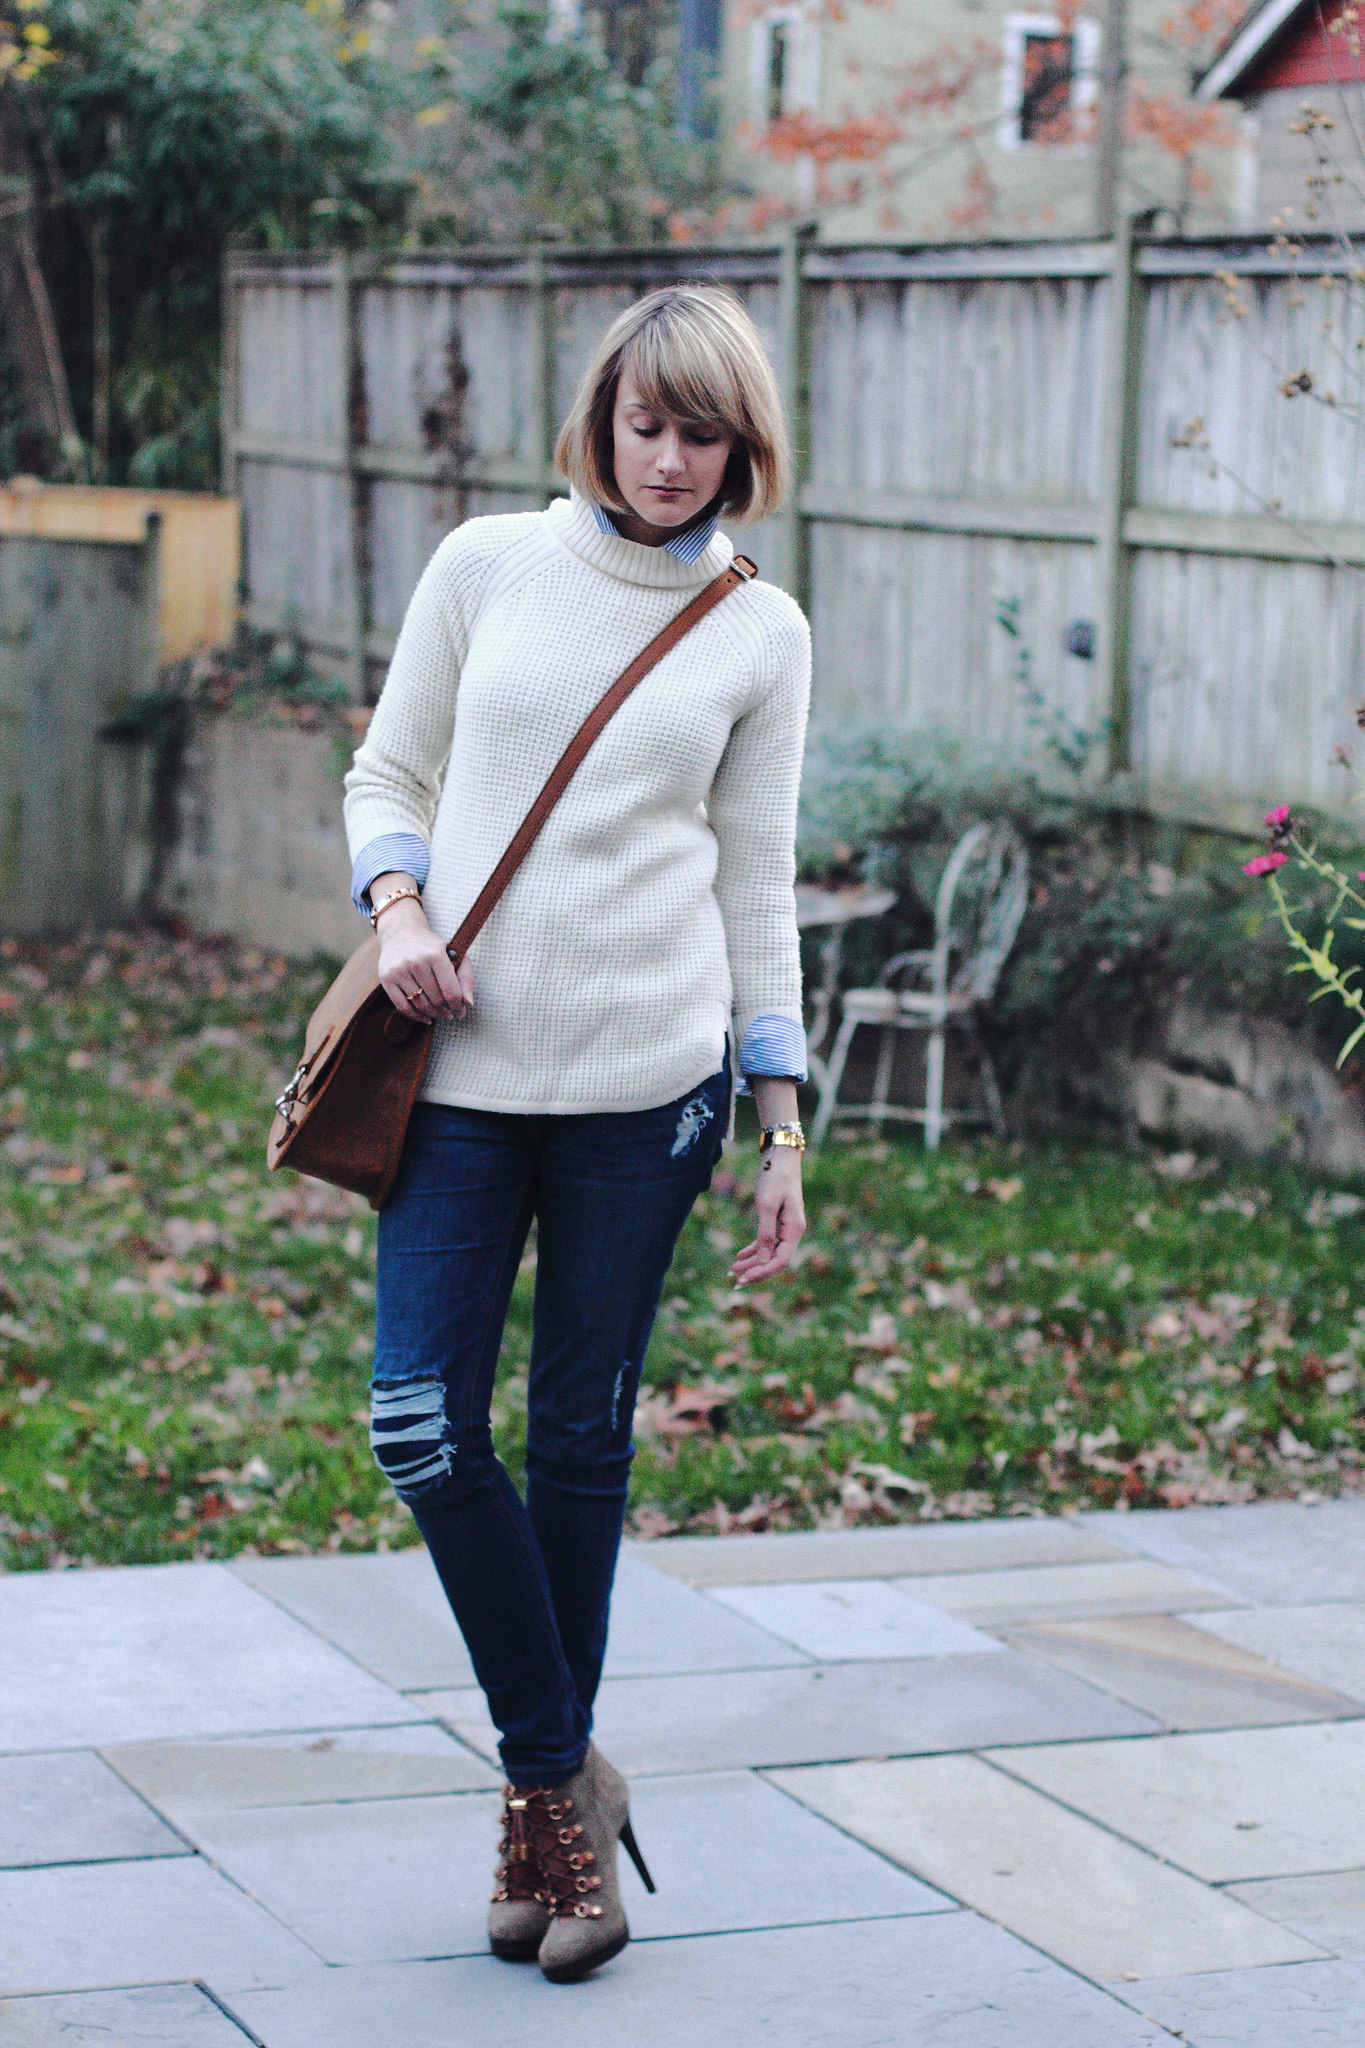 Banana Republic sweater and Saddleback Leather bag